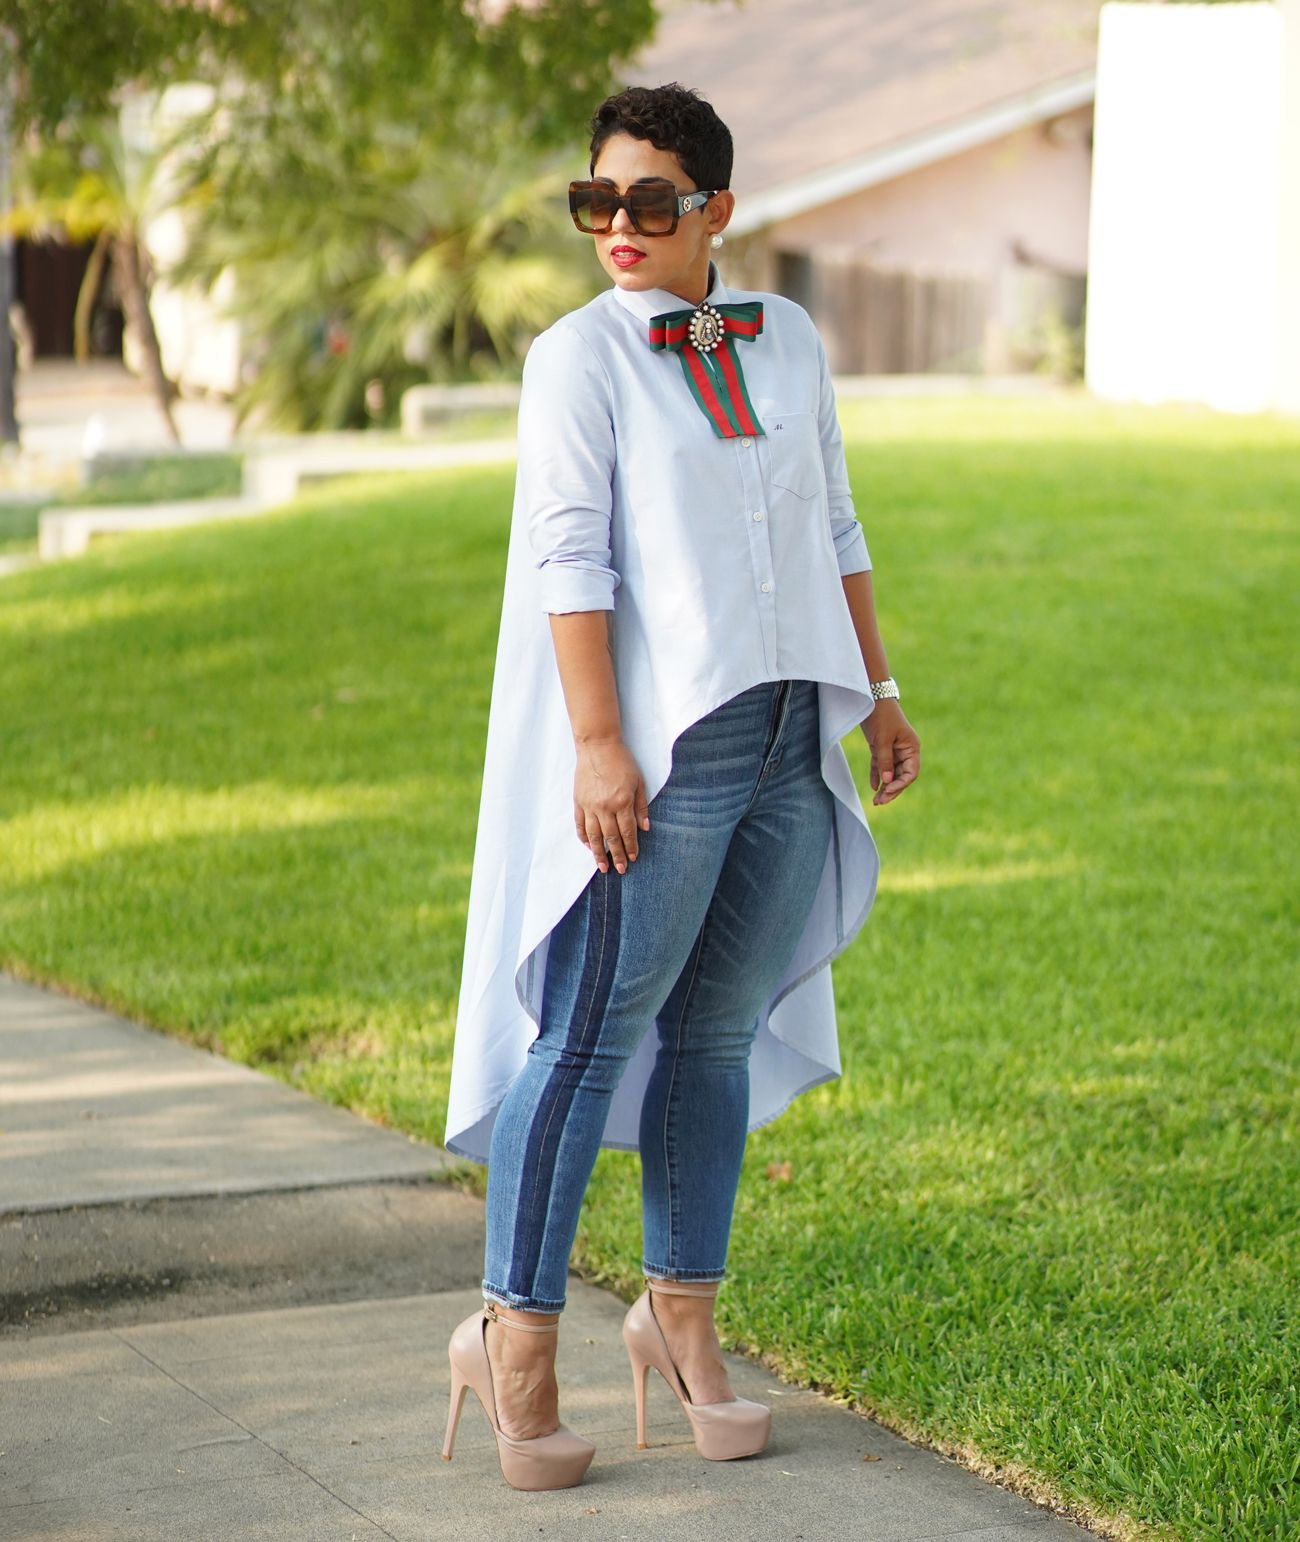 Diy High Low Button Up Shirt Using The Katie Pdf Mimi G Style Fashion Ladies Tops Fashion Corporate Attire